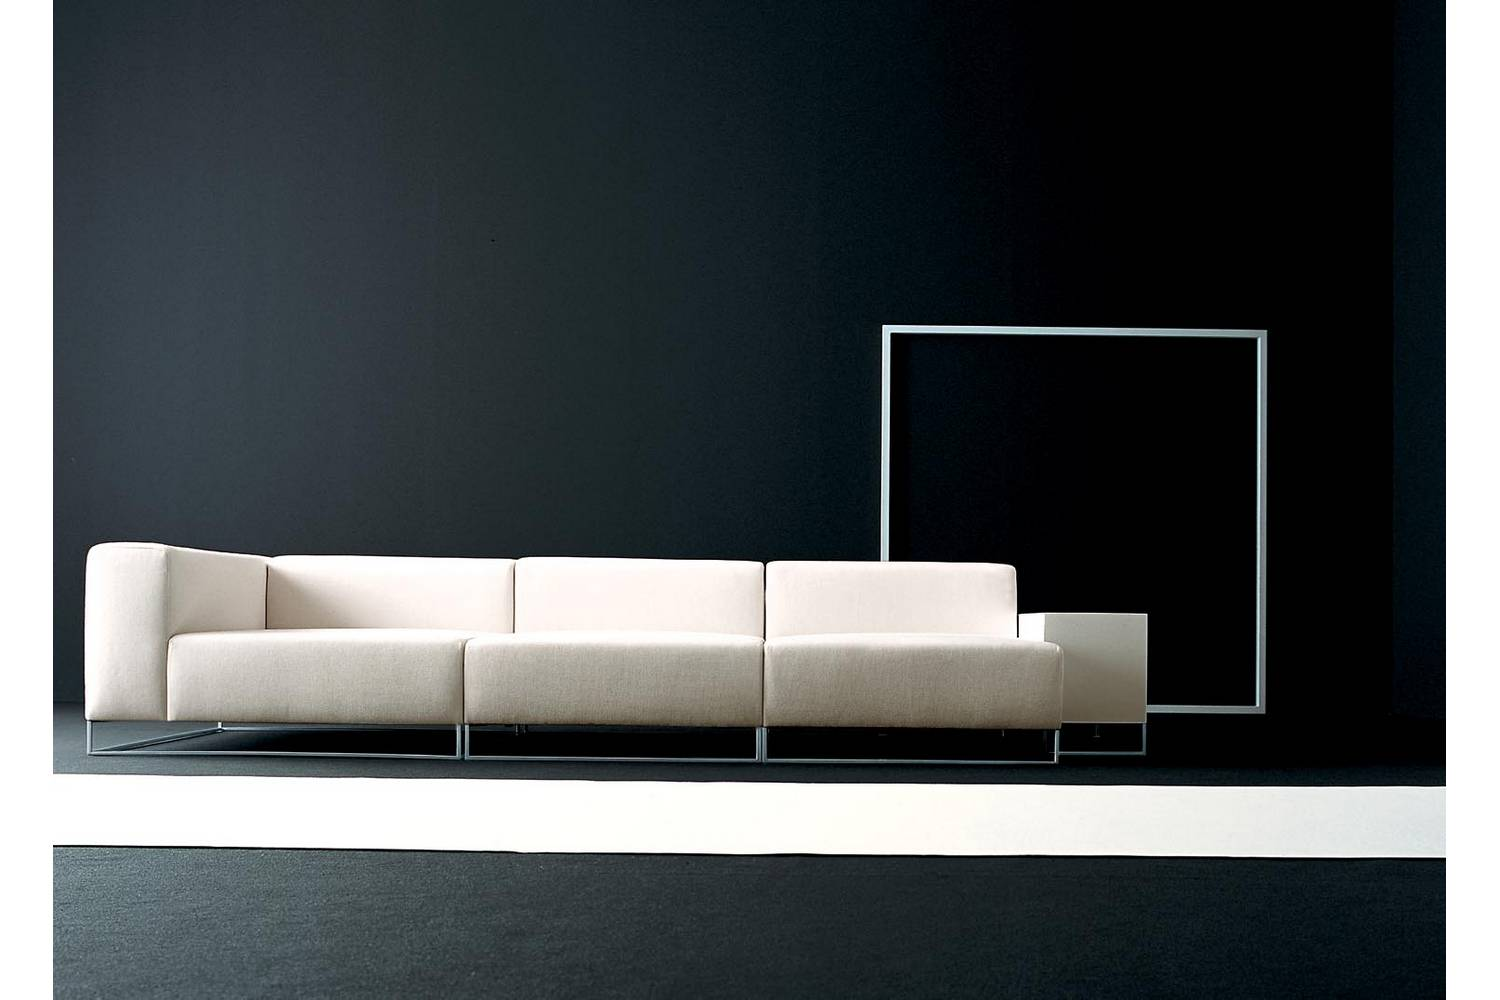 Living Divani The Wall Sofa Wall 2 Sofa By Piero Lissoni For Living Divani Space Furniture